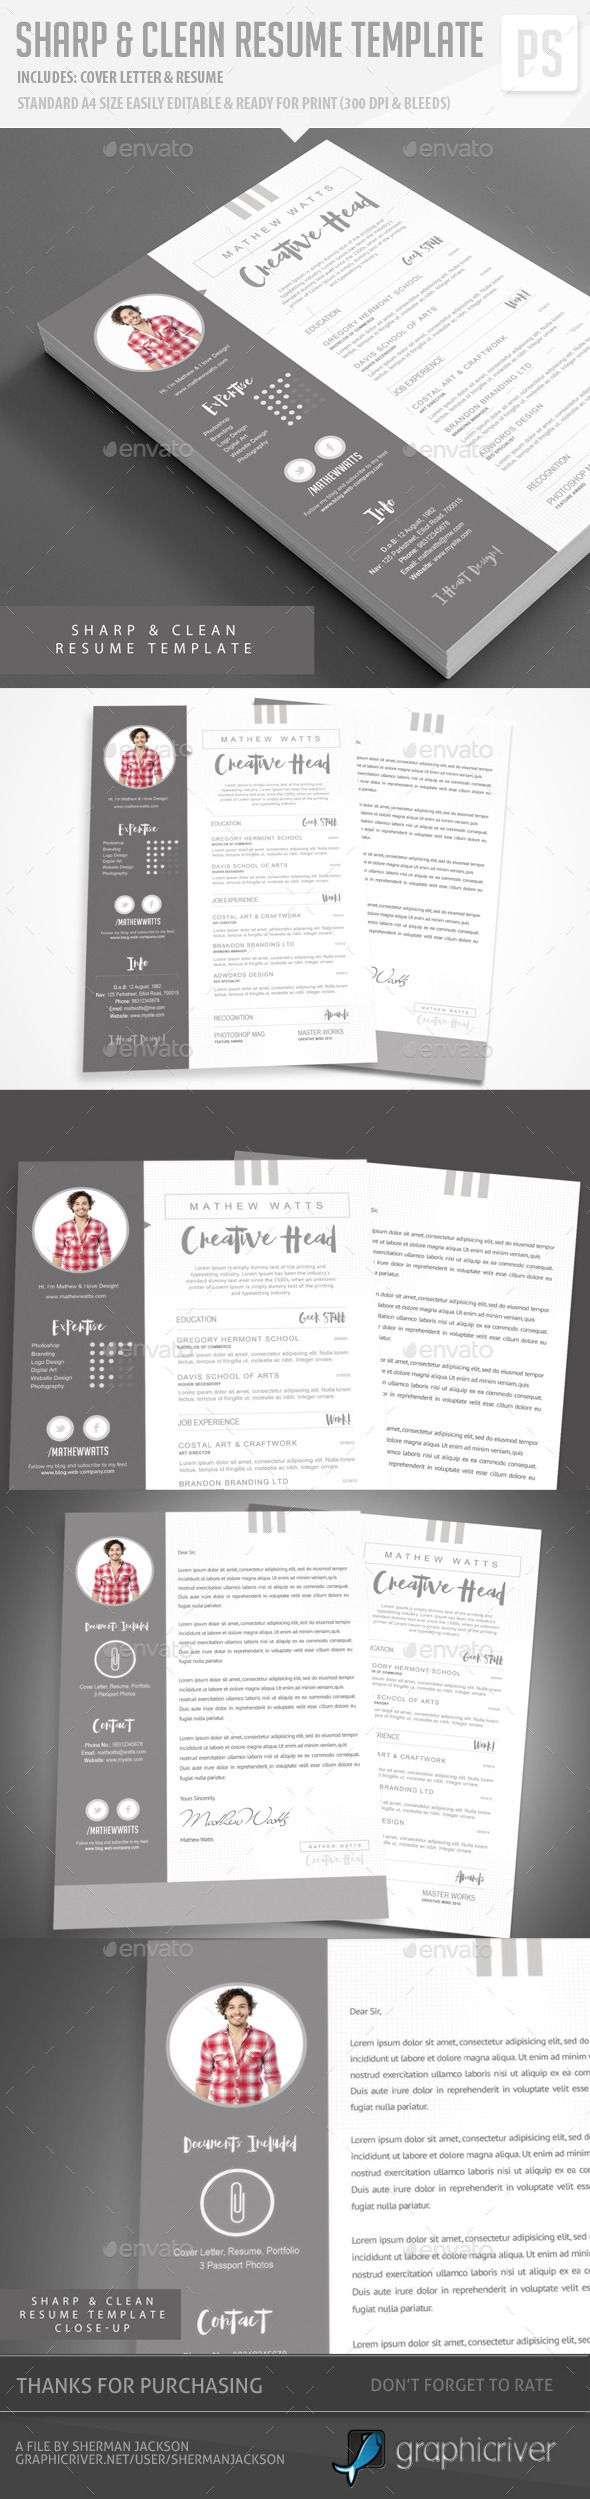 Sharp & Clean Resume for Photoshop — Photoshop PSD #corporate cv #creative cover letters • Available here → https://graphicriver.net/item/sharp-clean-resume-for-photoshop/12510846?ref=pxcr